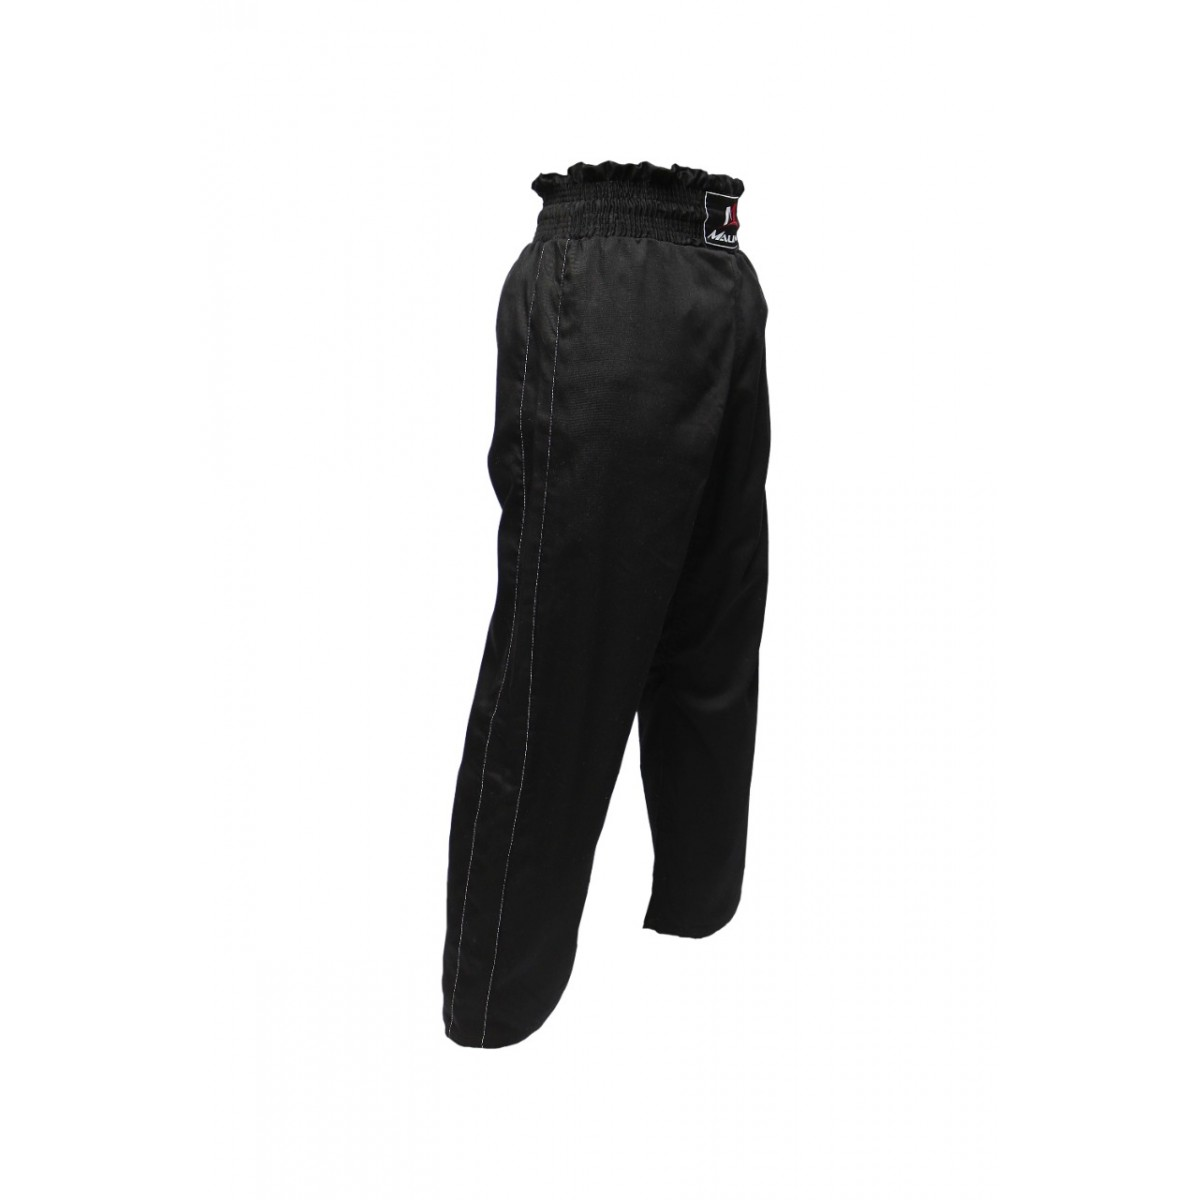 Malino Star Kickboxing Trouser Mix Martial Arts Training Poly Cotton Trouser Black